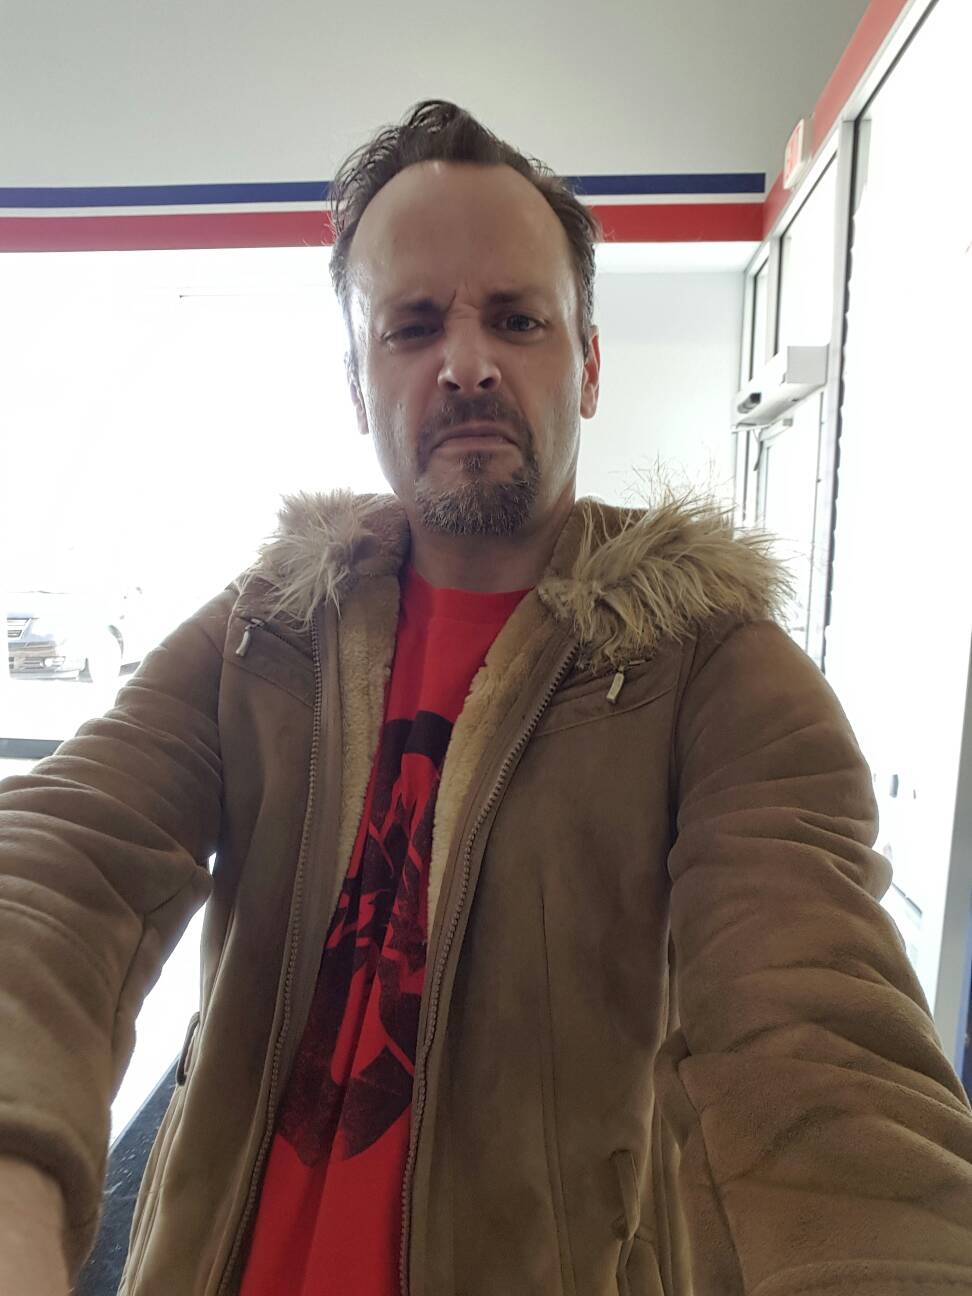 Author snarling at camera held in outstretched left arm, wearing brown seude womens jacket with fur-lined hood over a red t-shirt with black Dungeons and Dragons design.